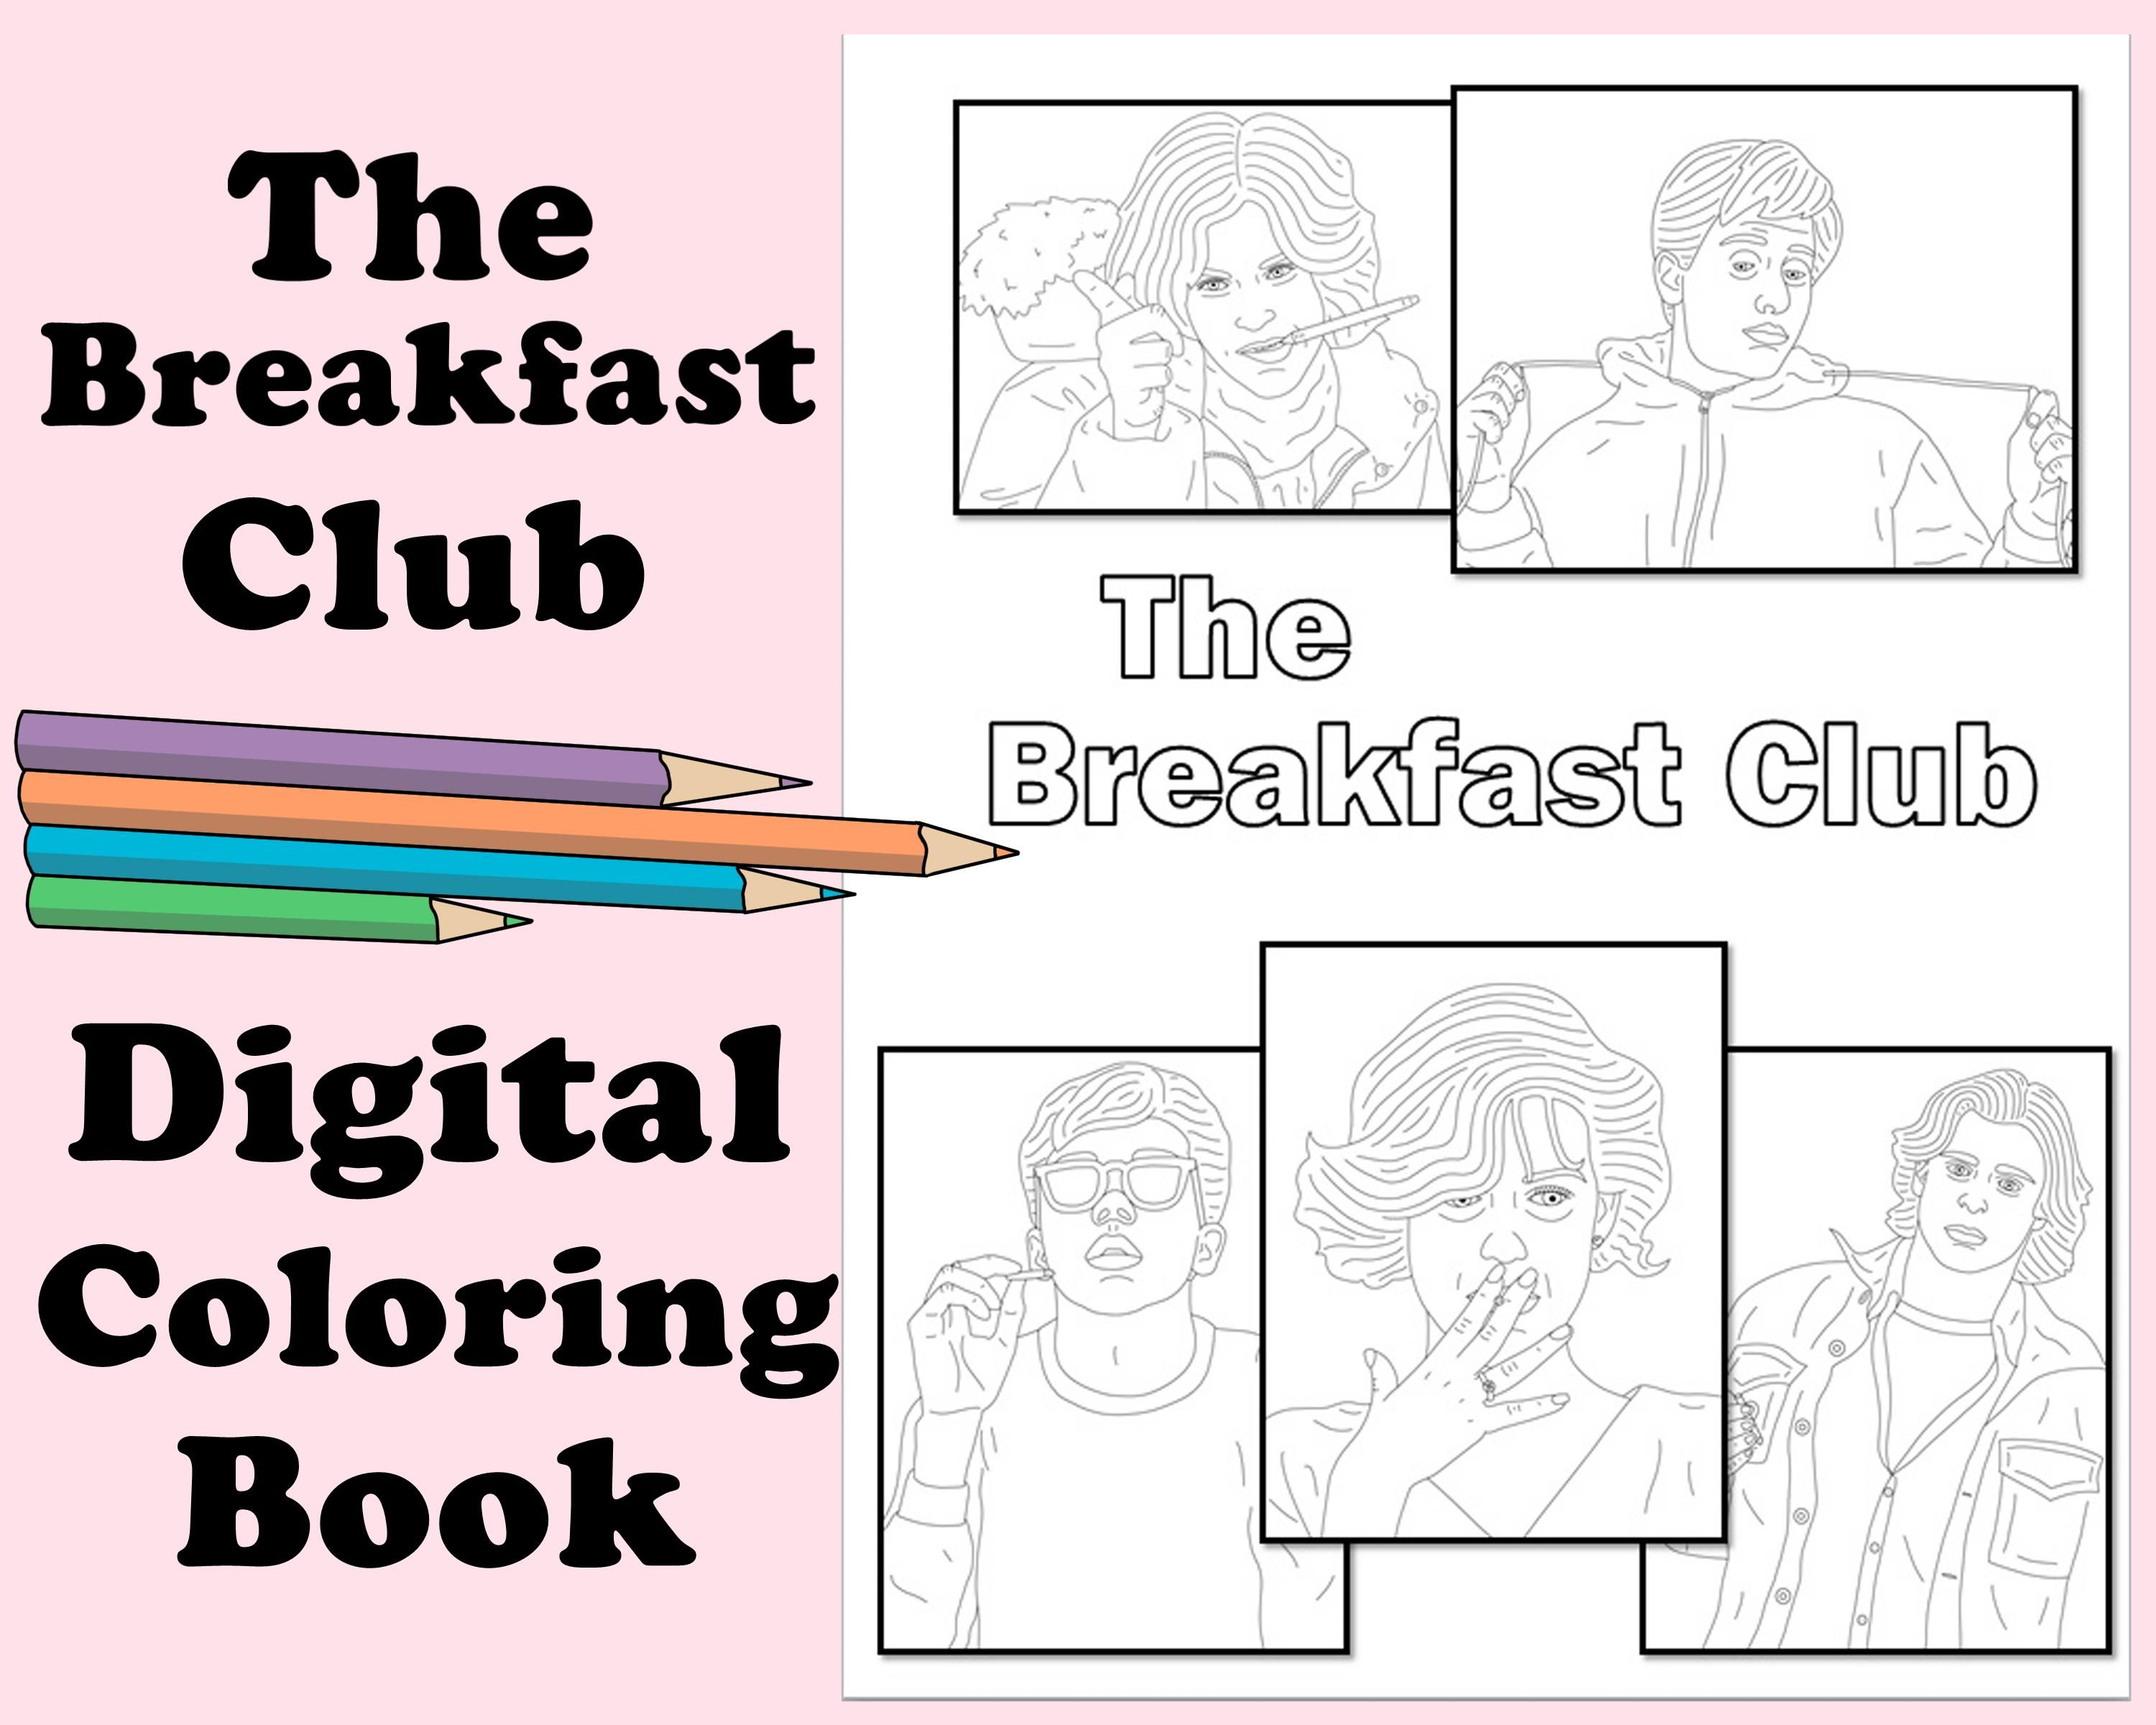 The Breakfast Club Coloring Book Instant Printable Digital Pdf Travel Rainy Day Activity Art Therapy Coloring Pages Romance 80s Coloring Books Coloring Pages The Breakfast Club